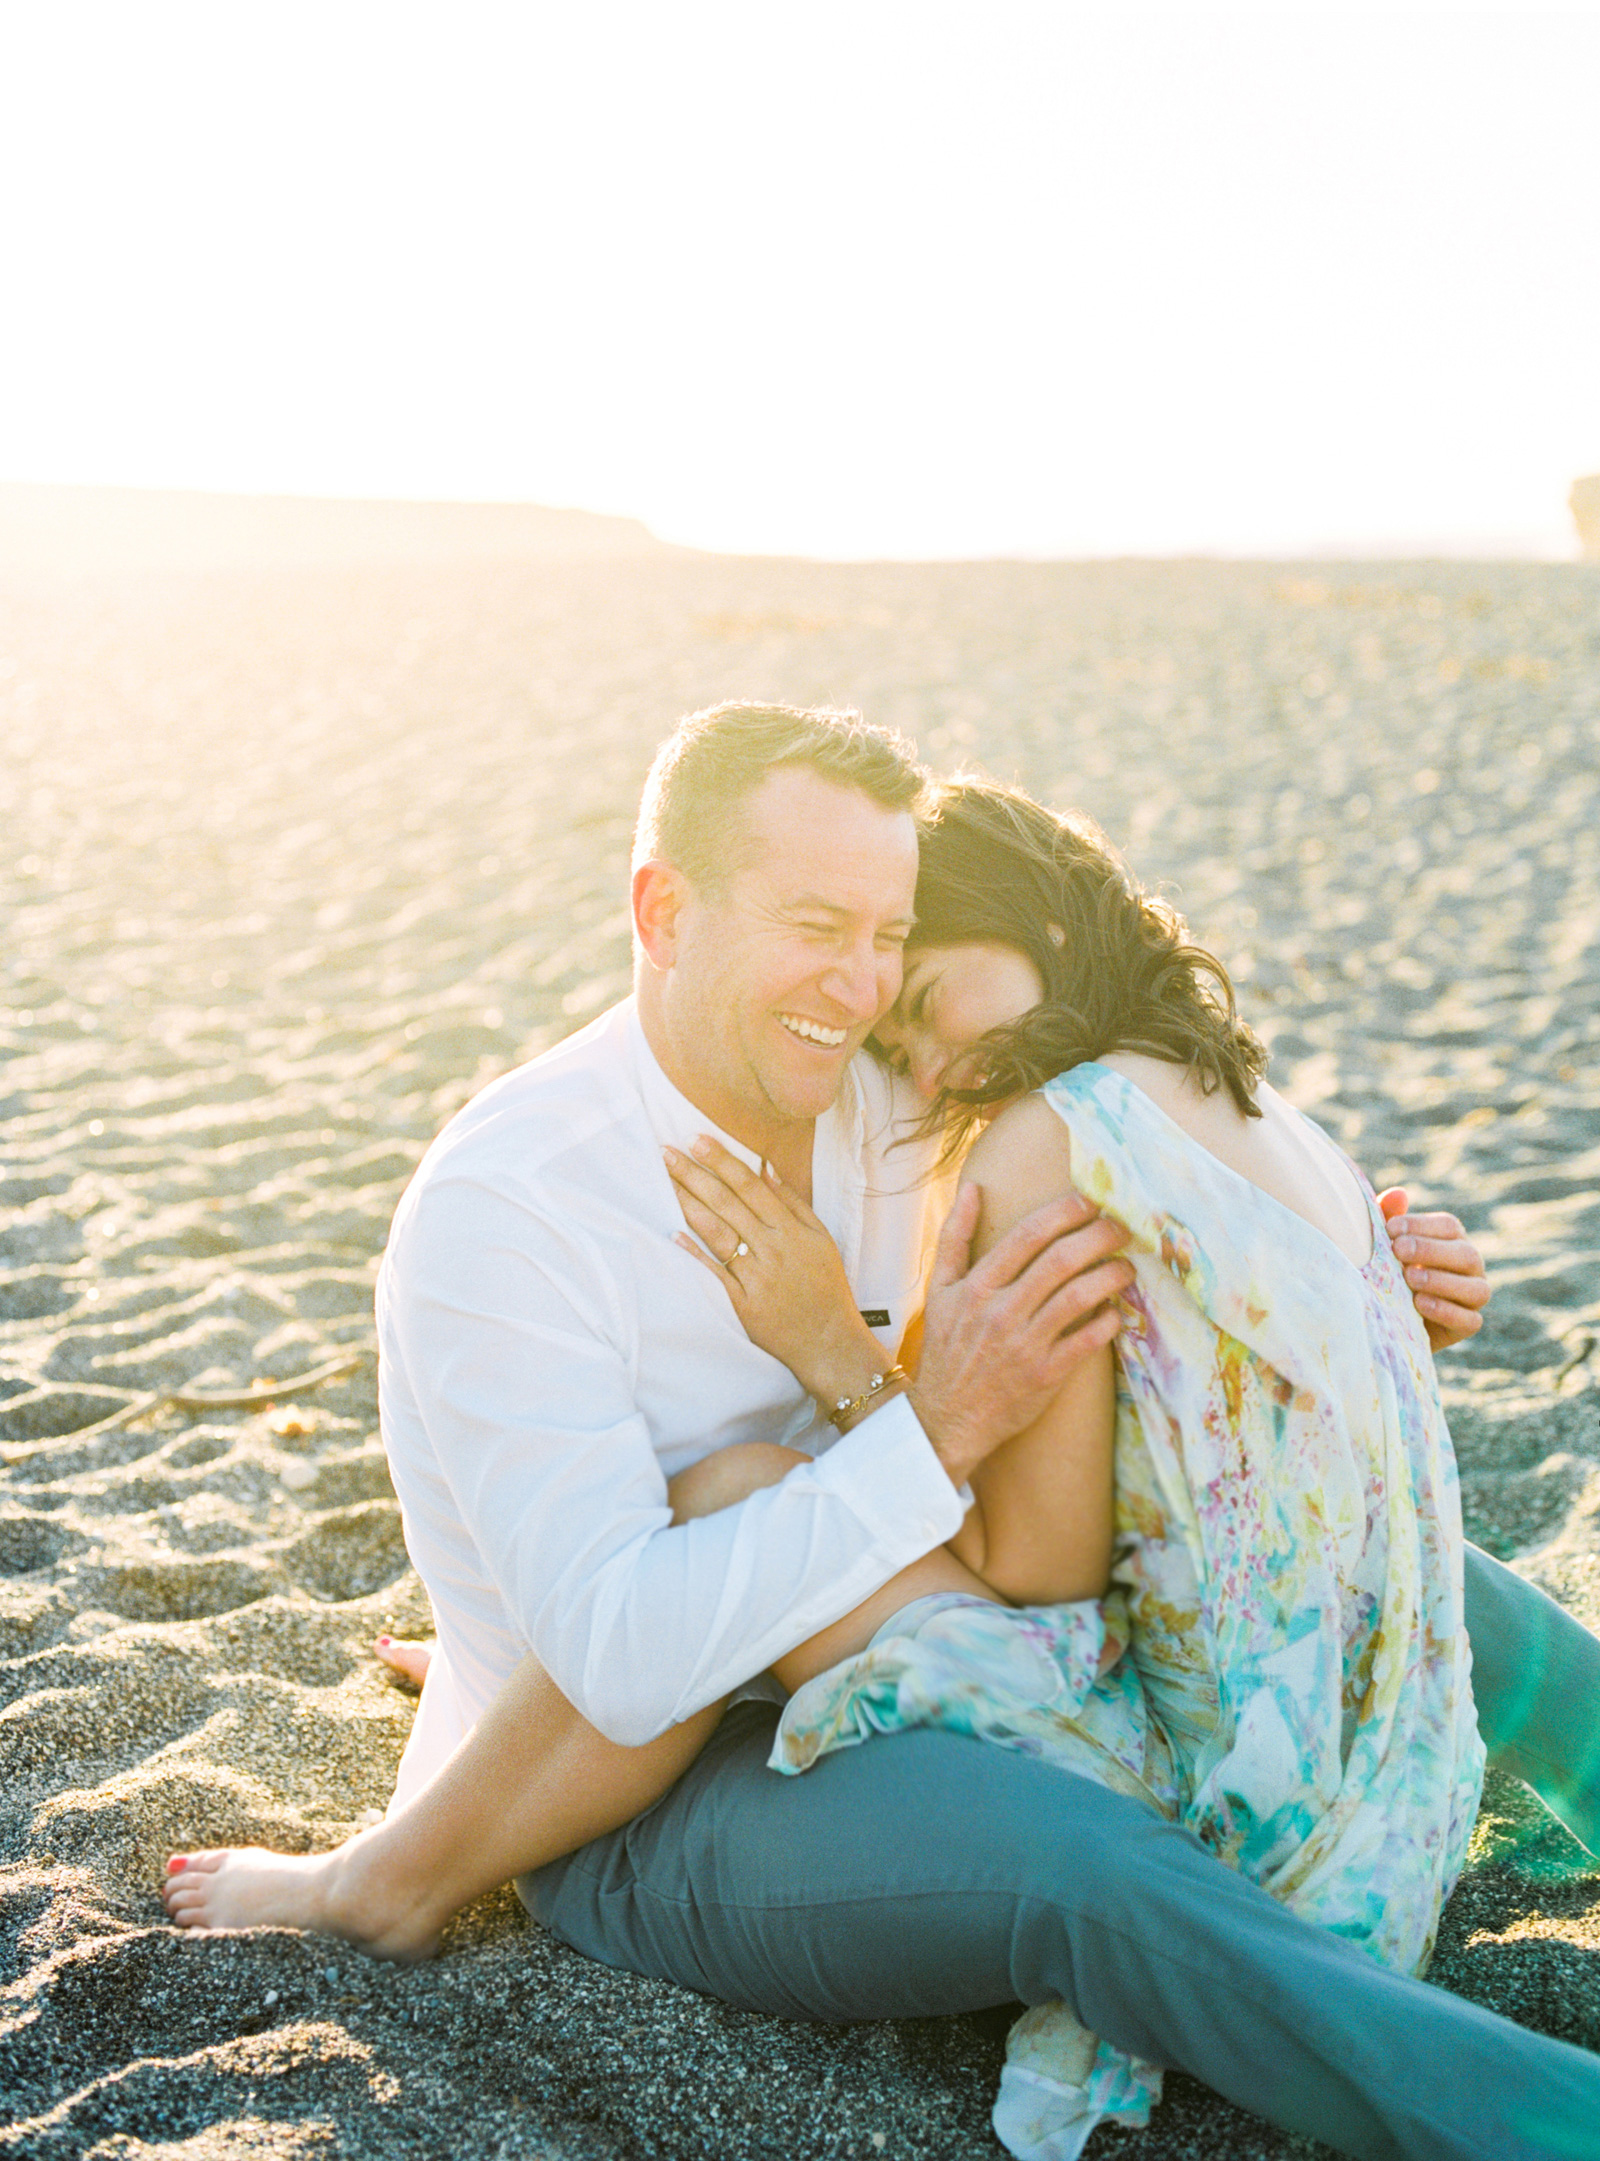 Natalie-Schutt-Photography-Malibu-Engagements-Malibu-Wedding-Beachside-Wedding-Fine-Art-Wedding-Photography-Southern-California-Brides_10.jpg